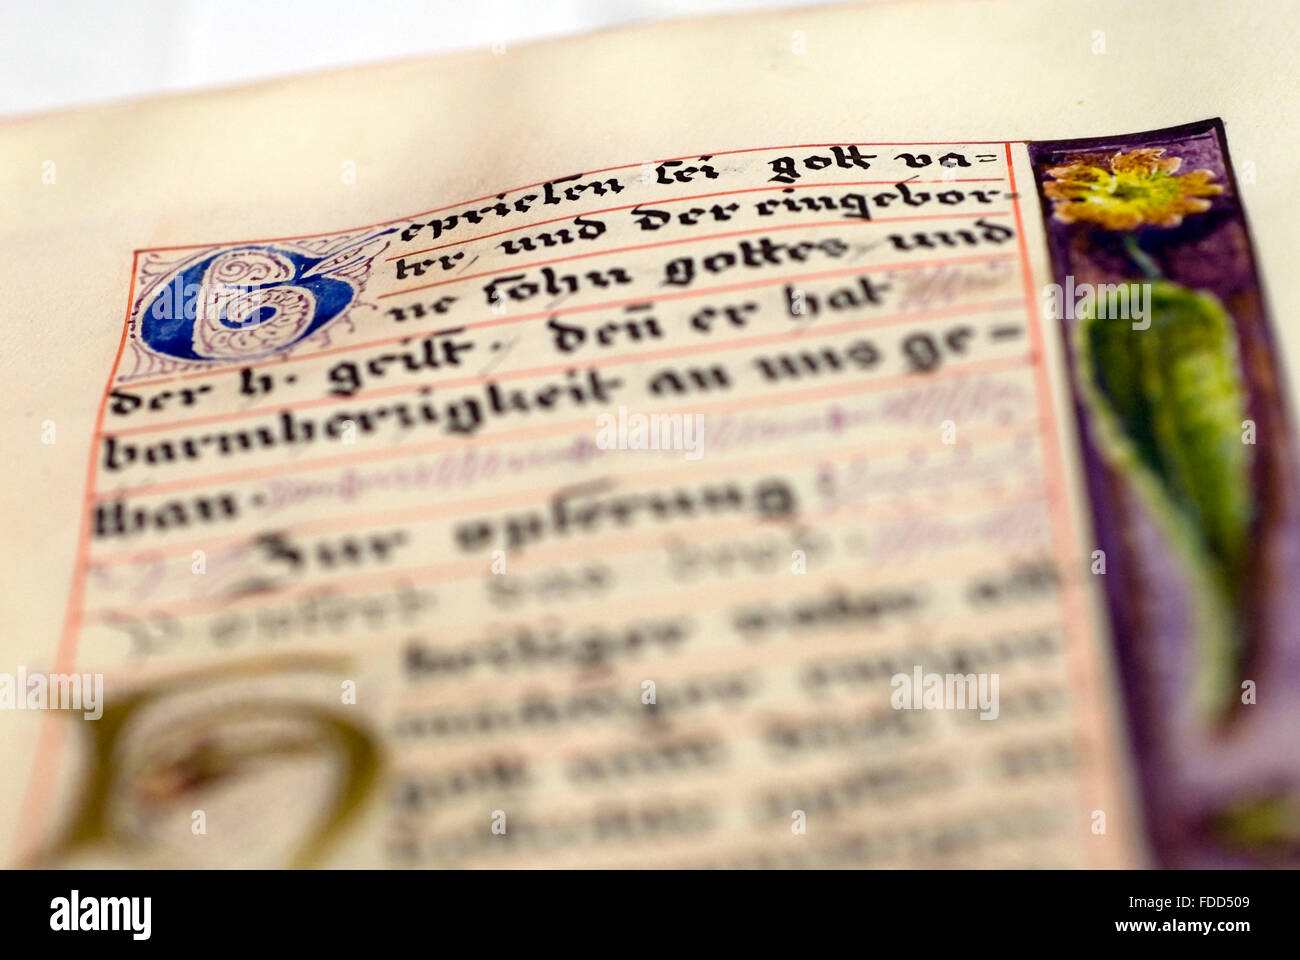 Historic, hand-written biblical script at a convent library, Germany,  europe - Stock Image